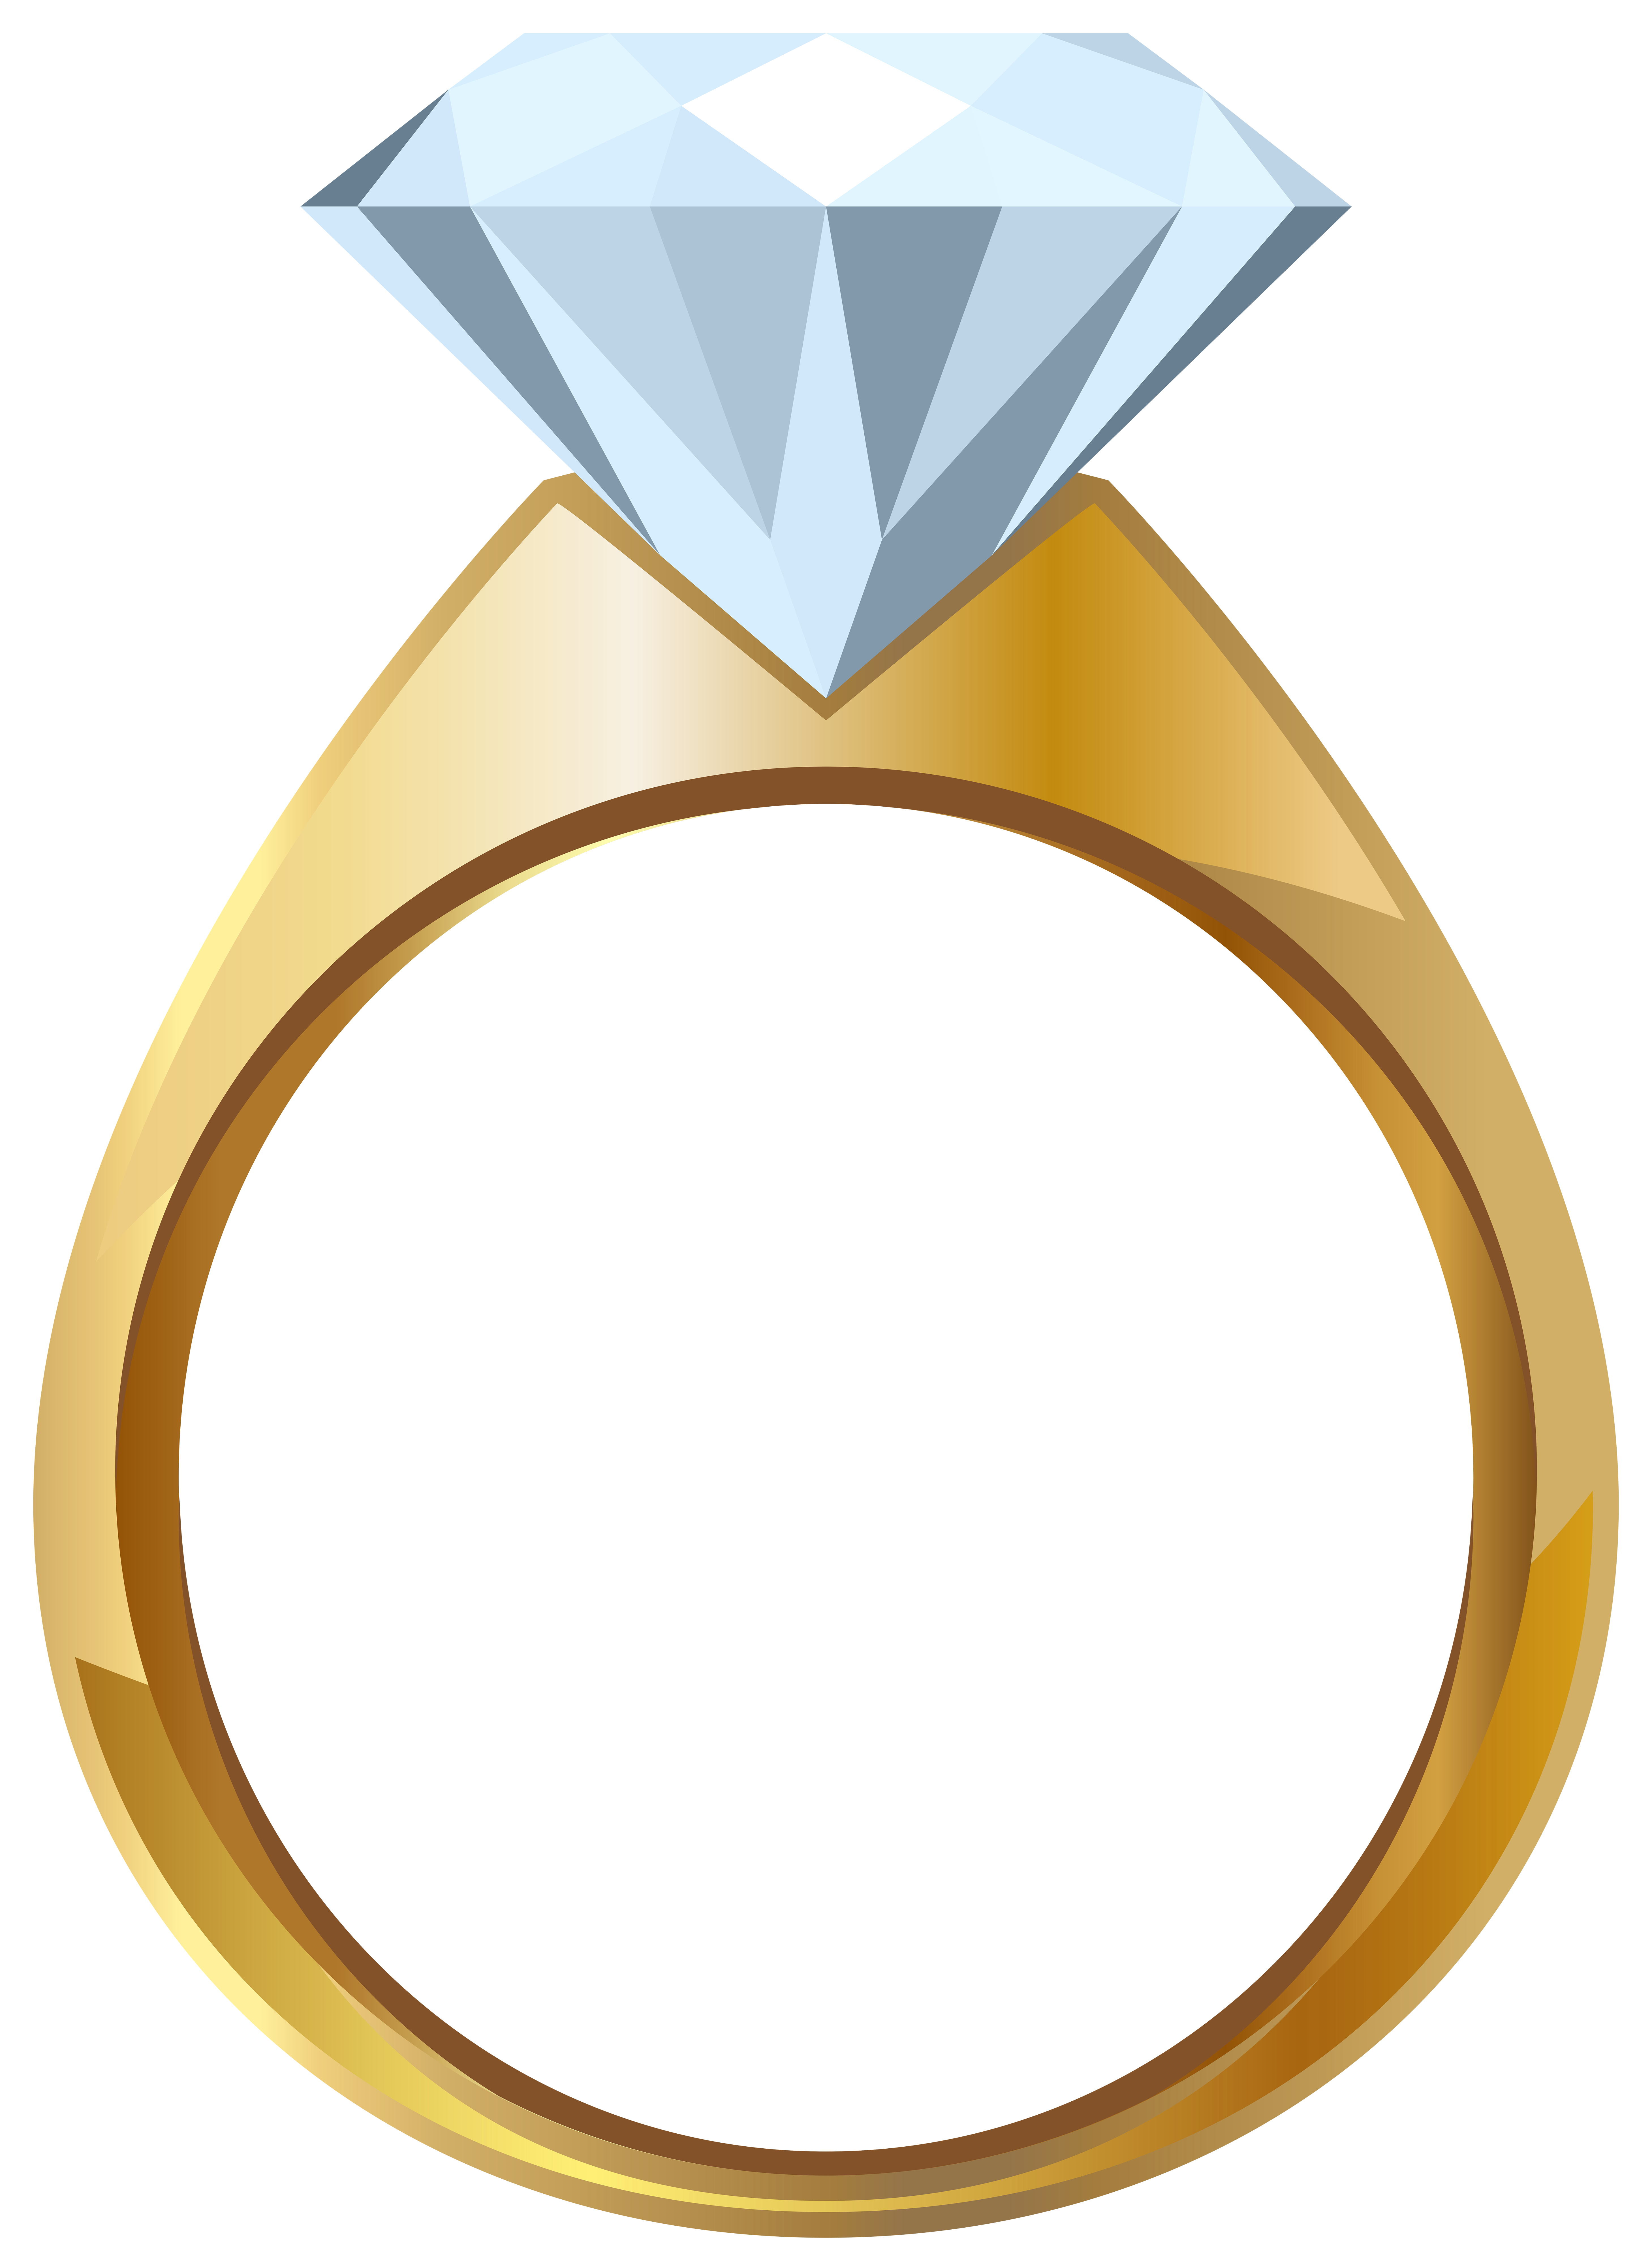 Gold engagement ring png. Diamond clipart coloring page